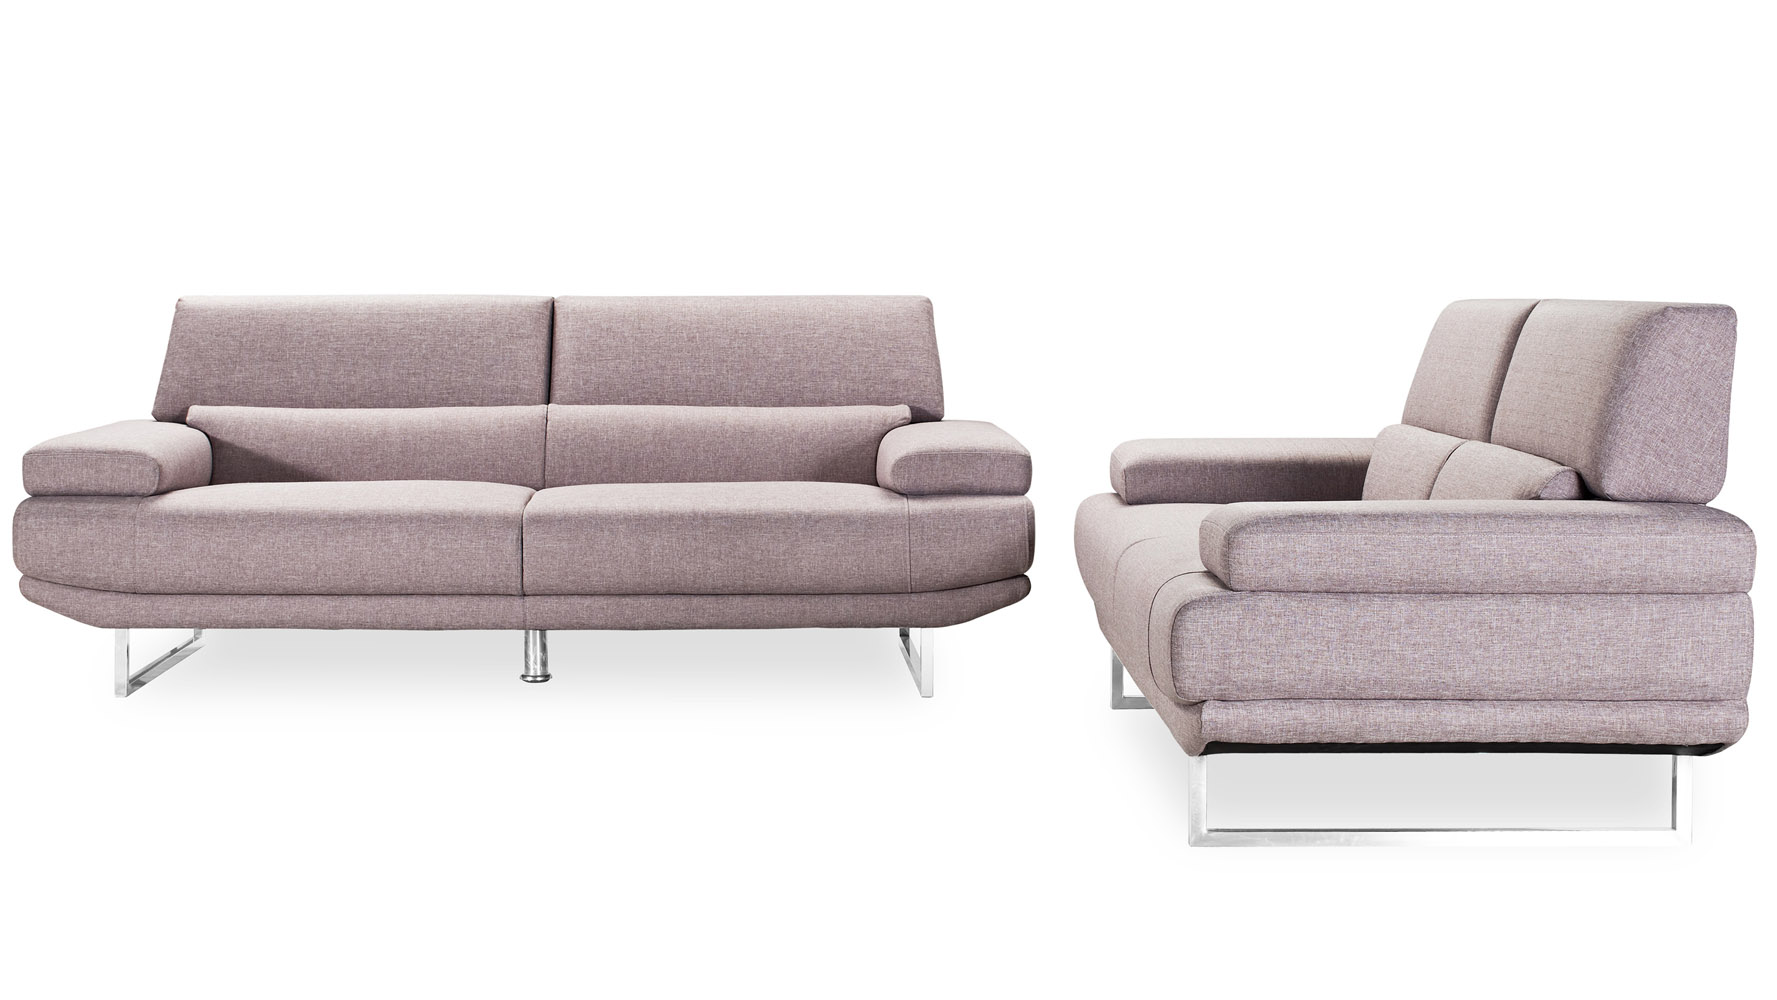 Modern Taupe Fabric Upholstered 2 Piece Sofa Set With